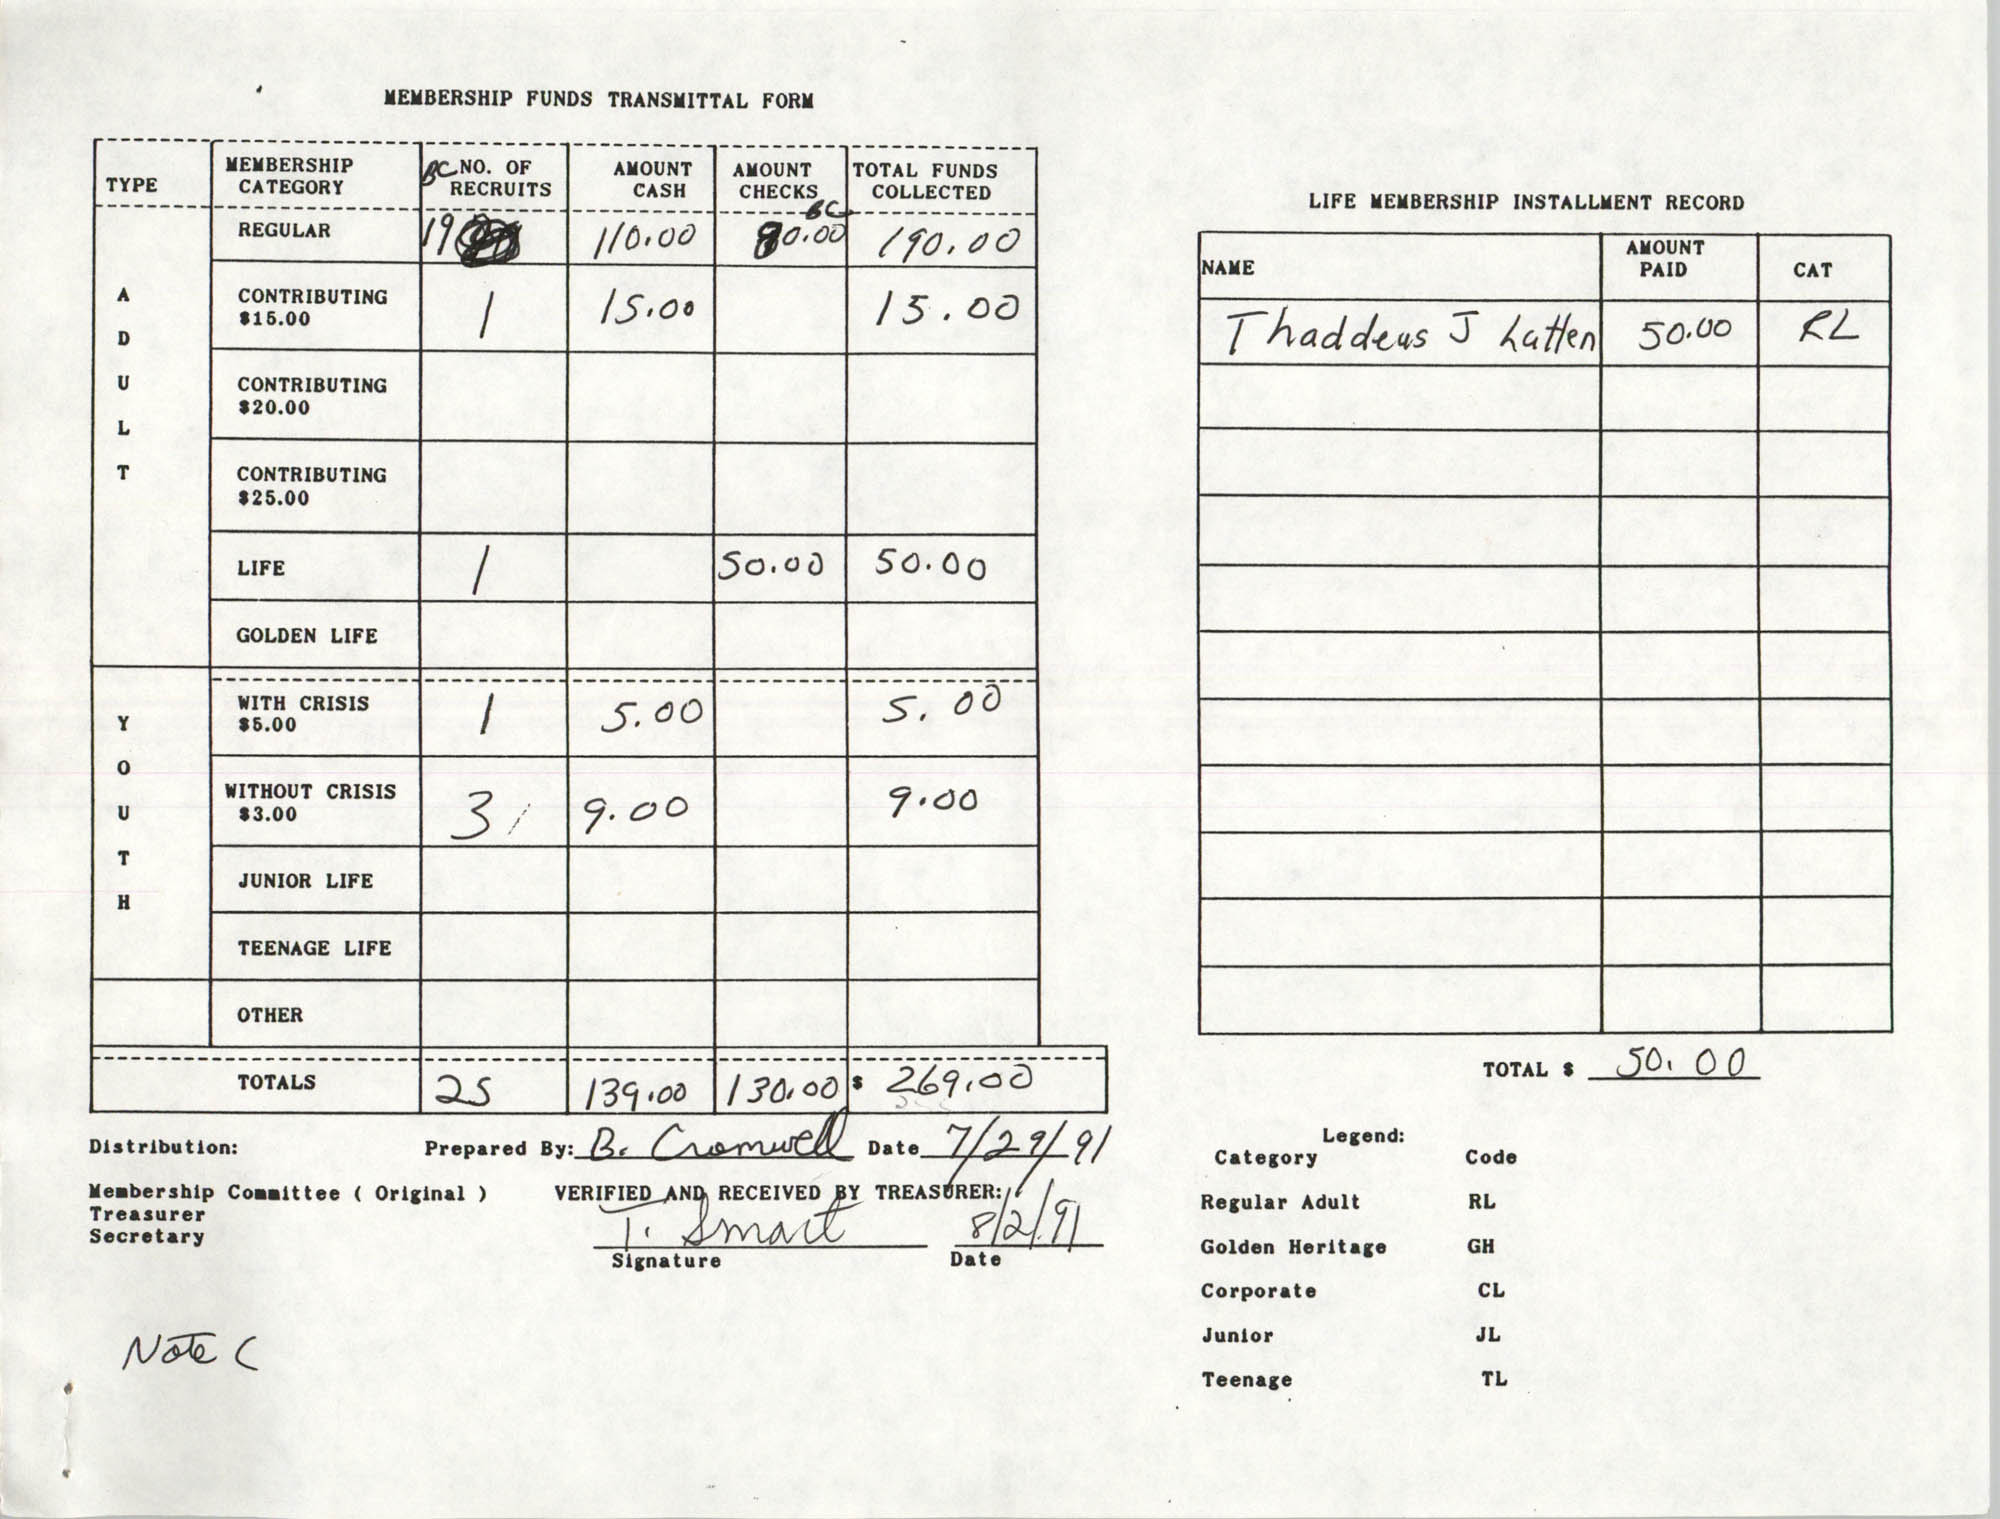 Charleston Branch of the NAACP Funds Transmittal Forms, August 1991, Page 3